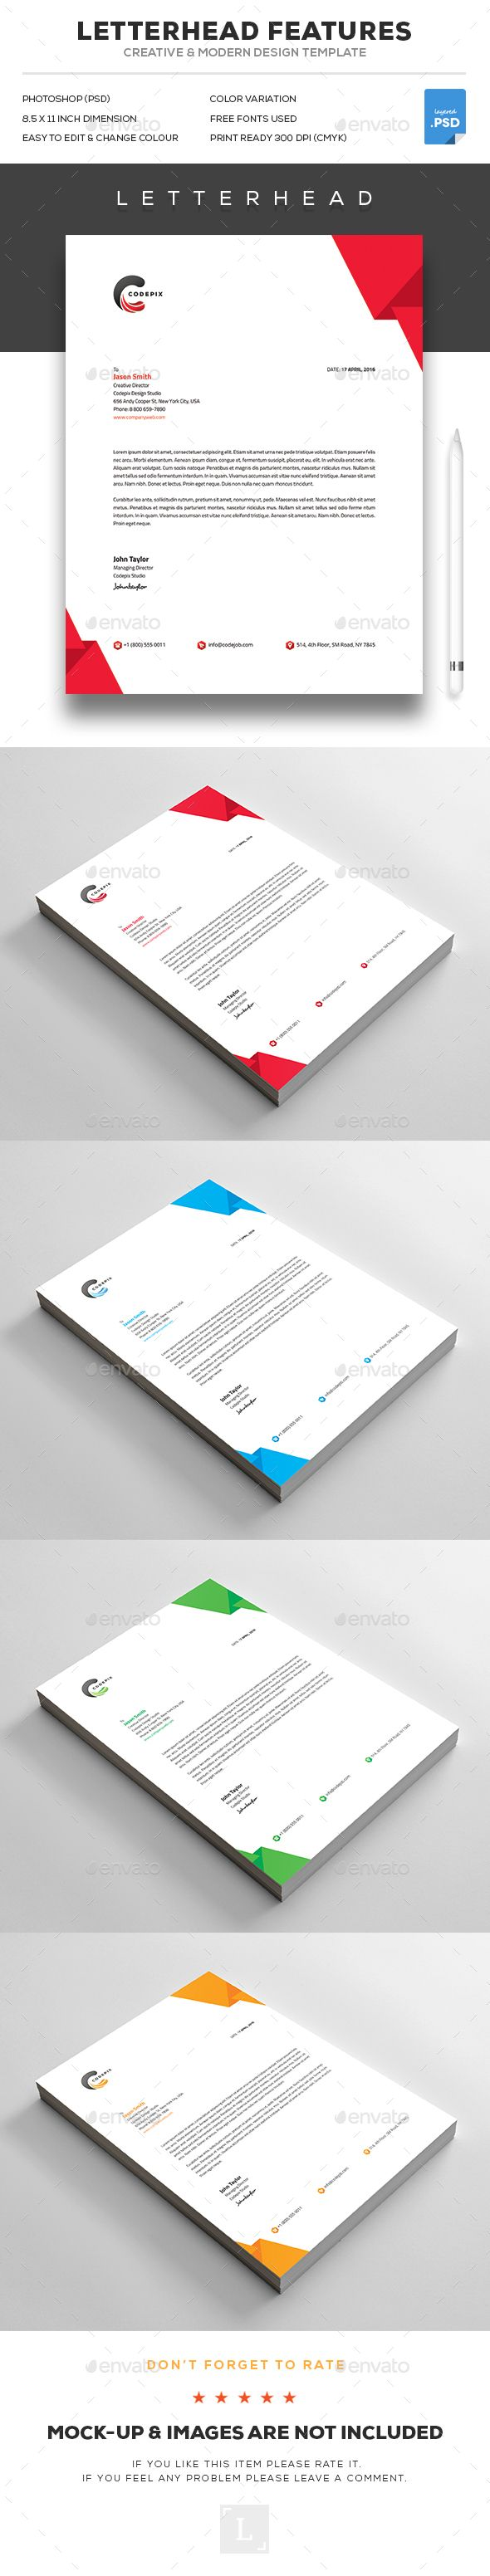 Letterhead letterhead stationery printing and print templates letterhead letterhead designstationery designprint templatesdesign spiritdancerdesigns Images